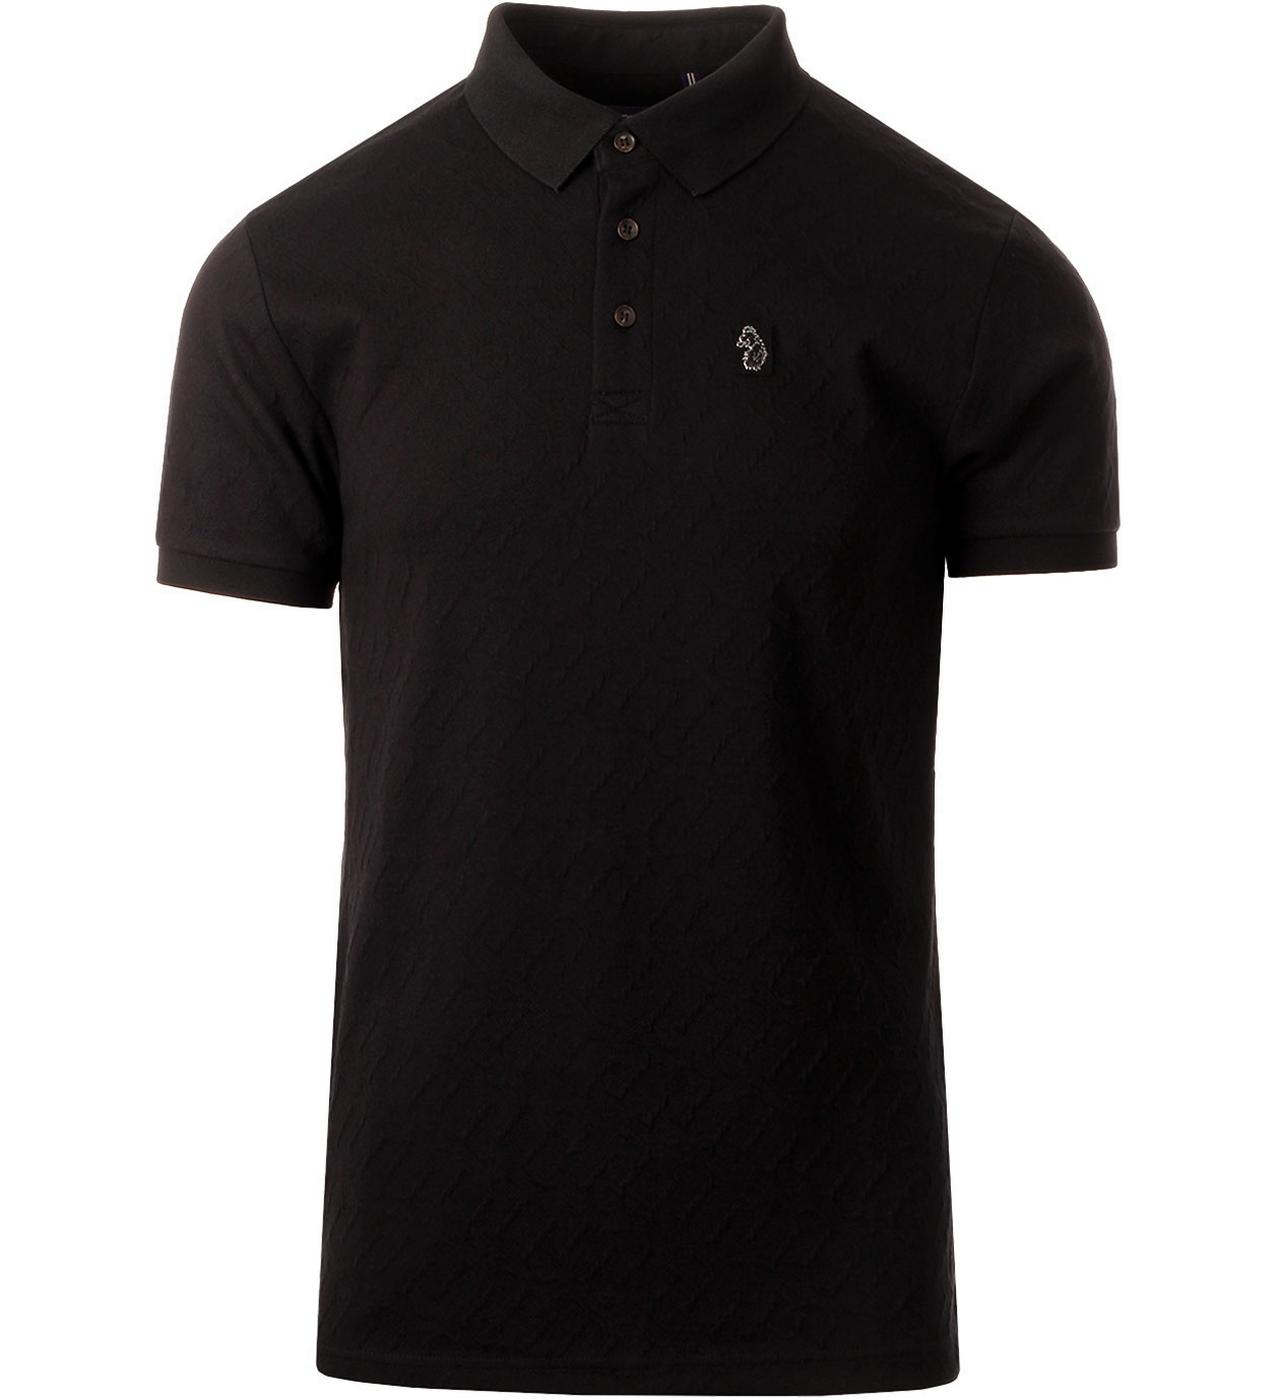 Elliot LUKE Men's All Over Jacquard Logo Polo B